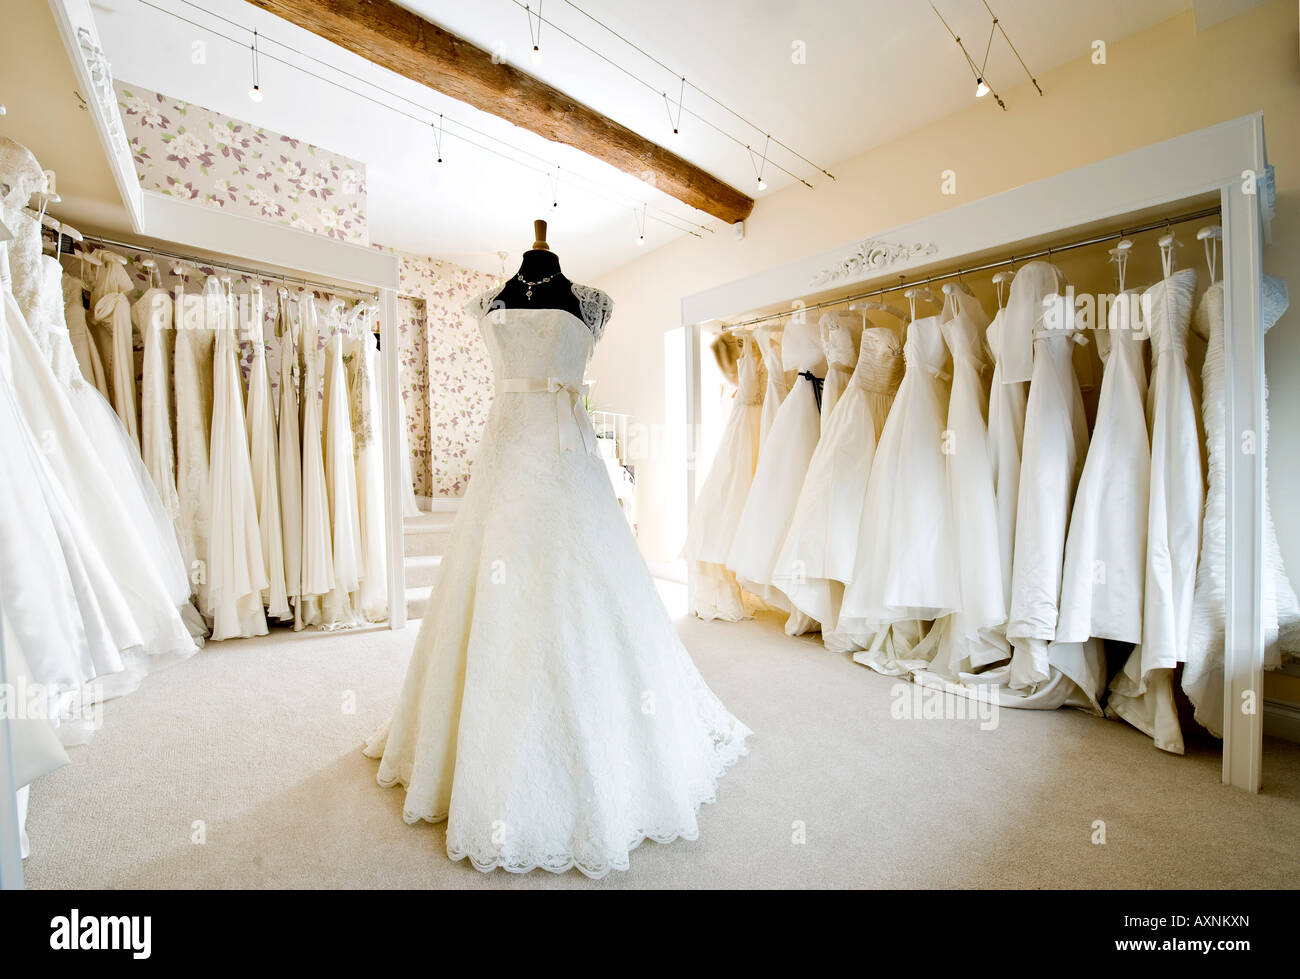 Interior of wedding dress gown in bridal boutique shop for Boutique wedding guest dresses